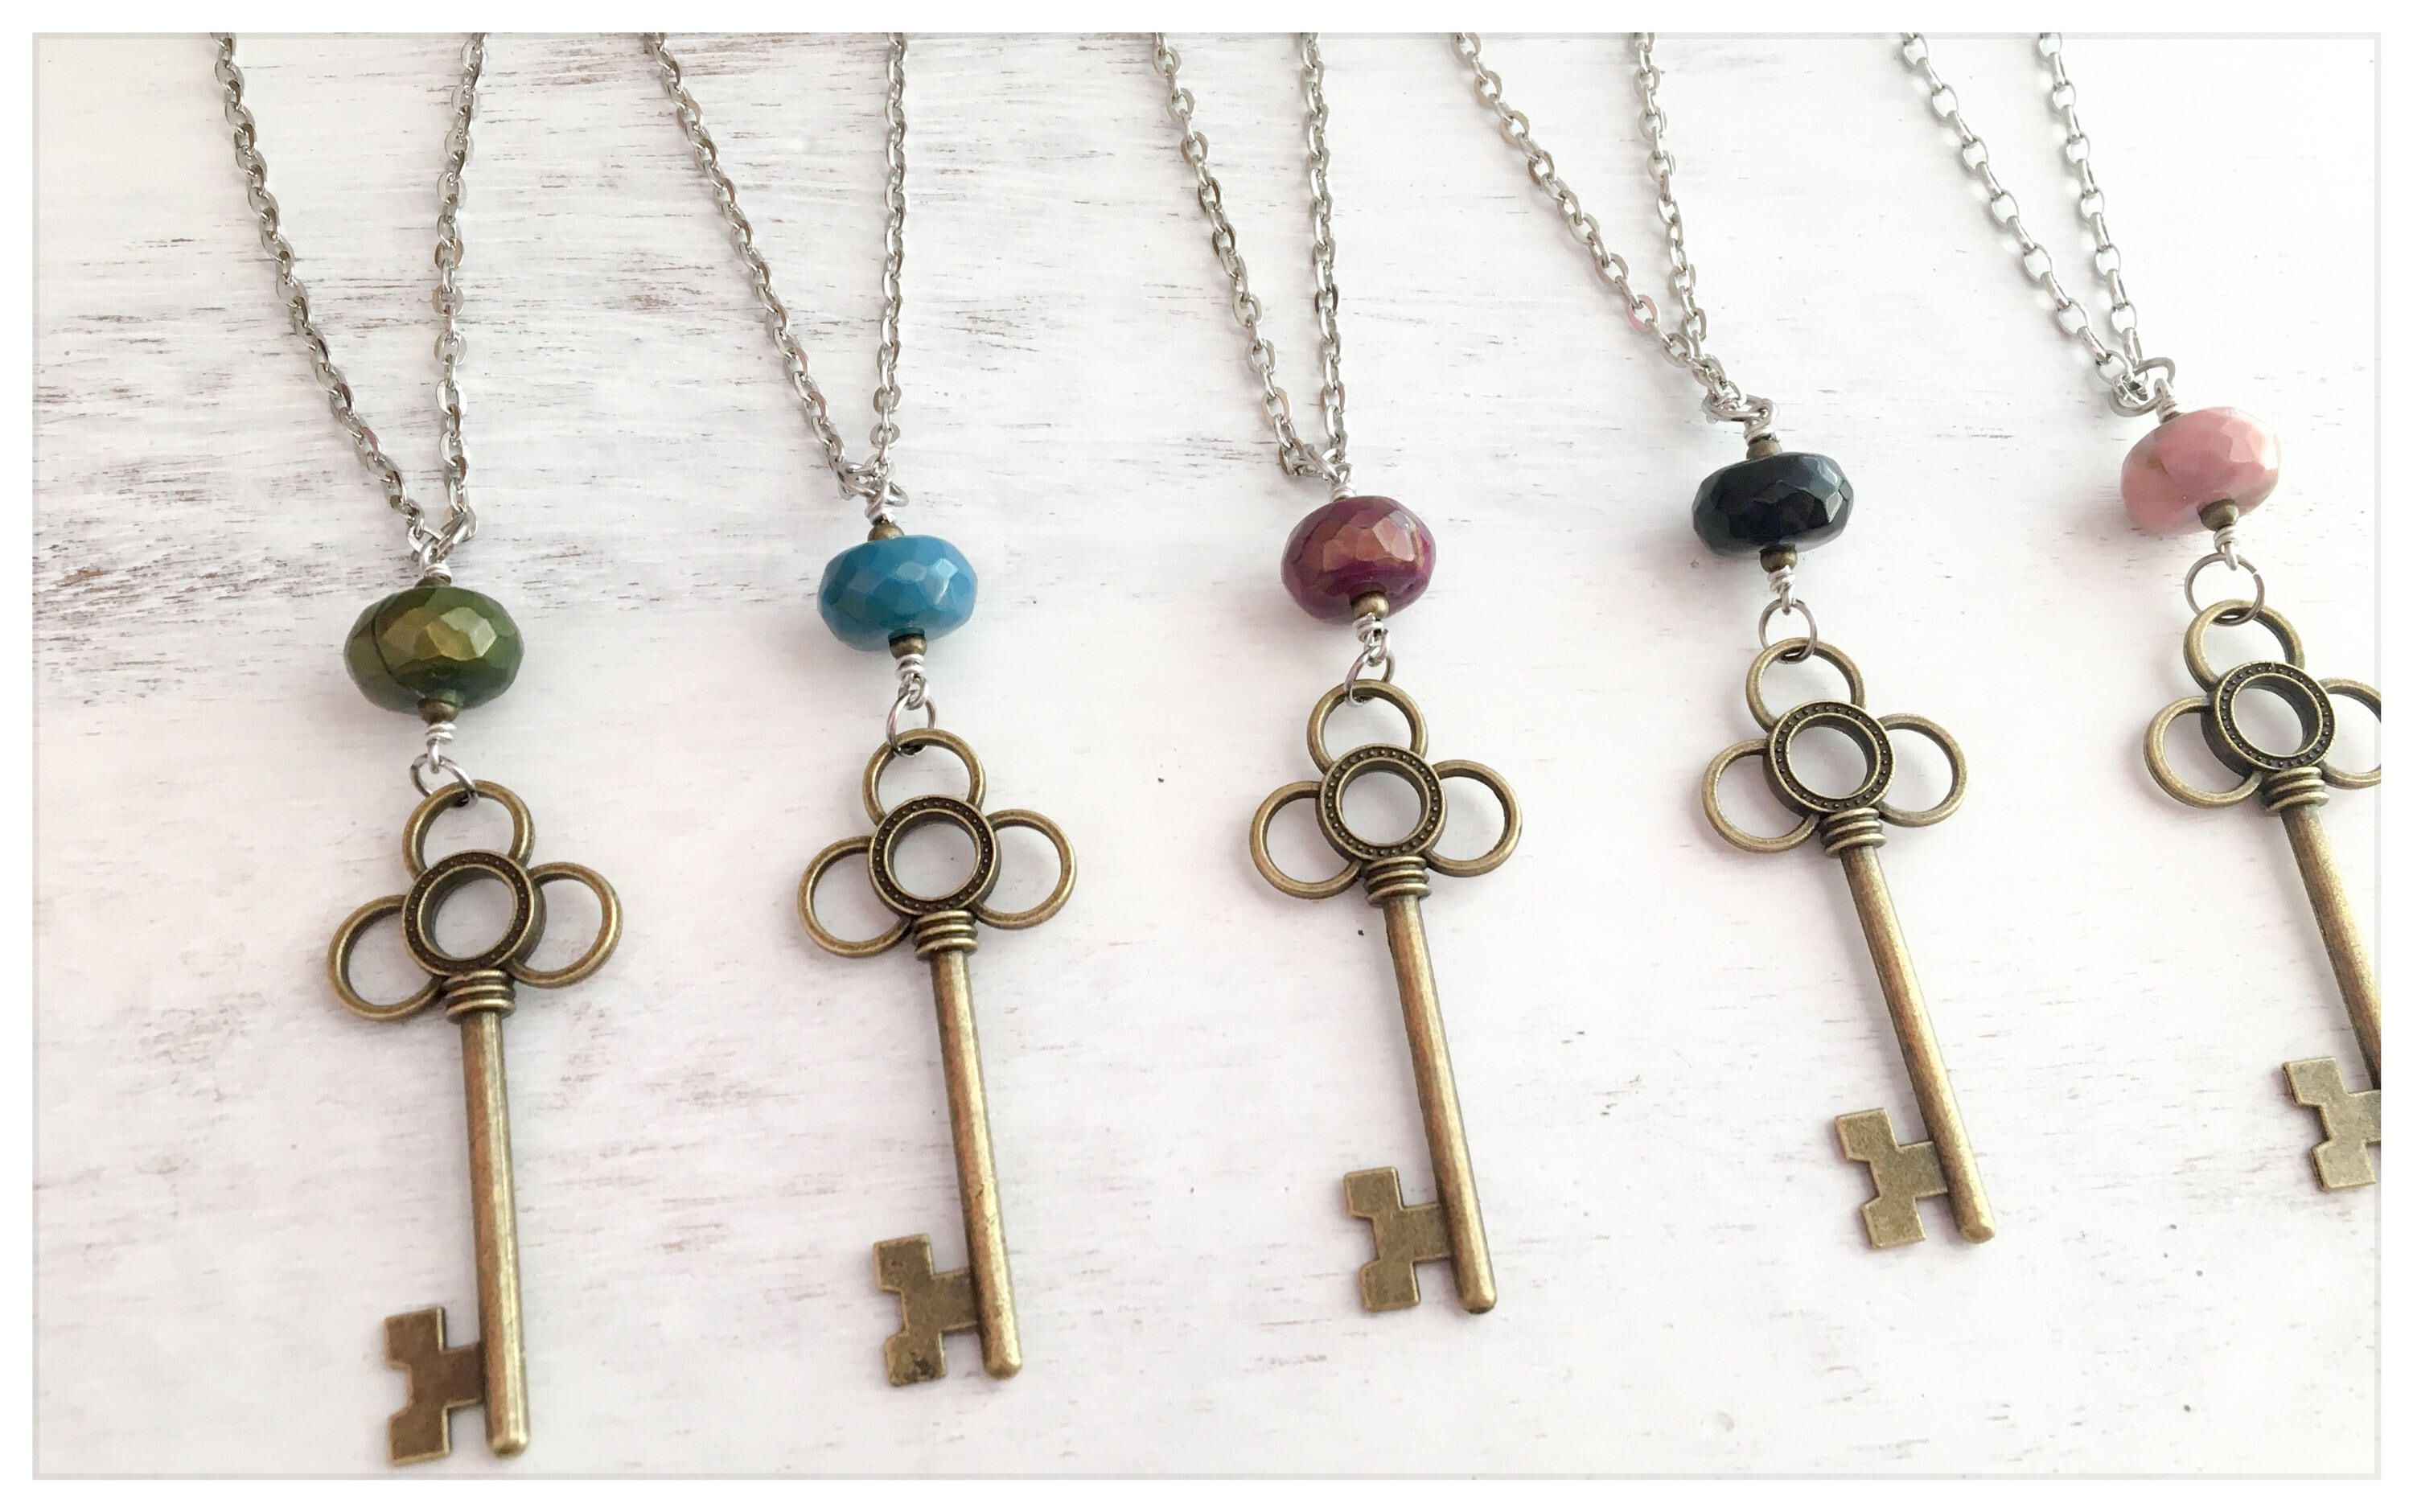 bead pin jewelry necklaces jewellery charm brass long key necklace trendy fashion